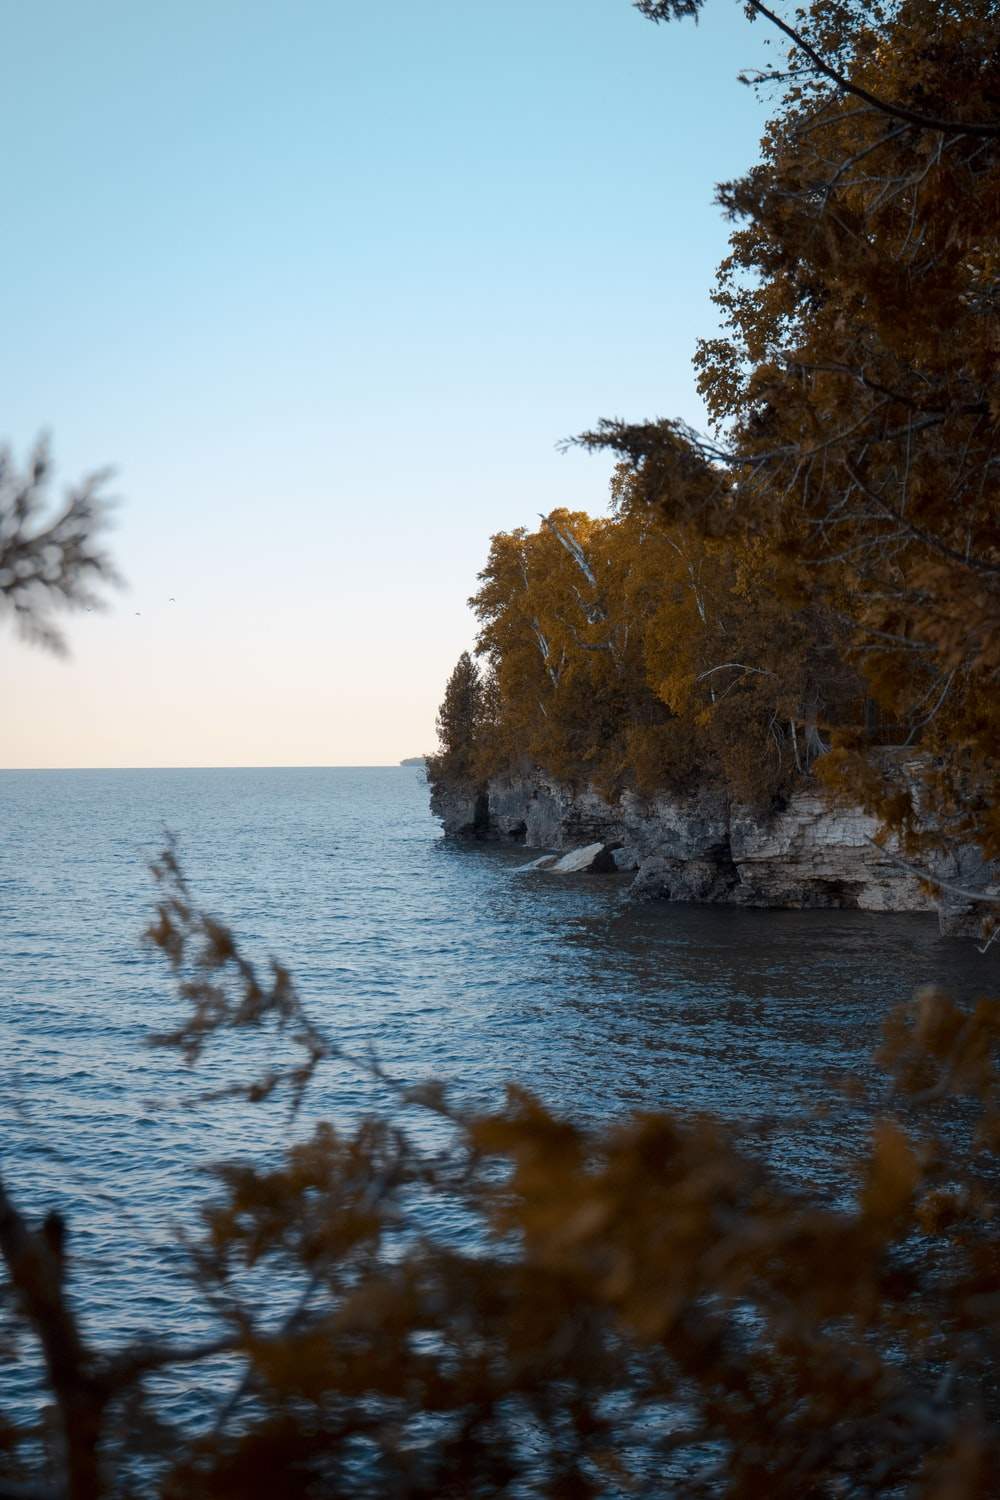 brown trees on rocky shore during daytime